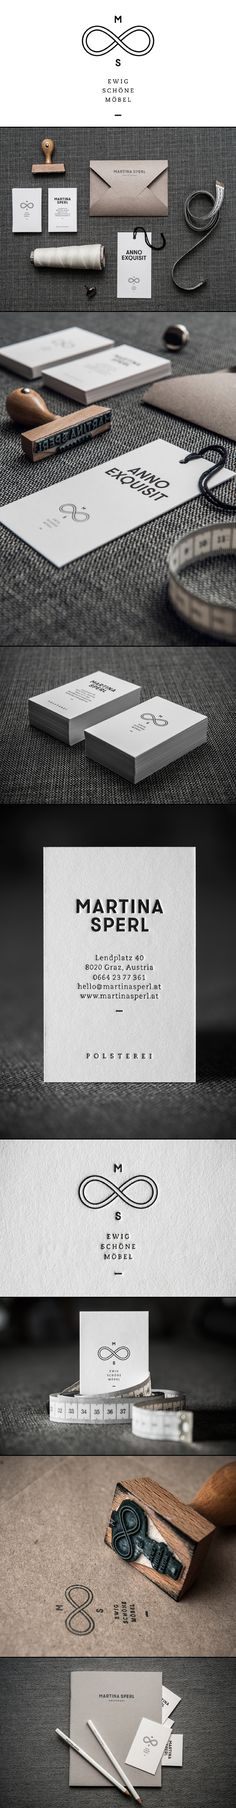 Martina Sperl Branding by moodley brand identity via Behance. | #stationary #corporate #design #corporatedesign #identity #branding #marketing < repinned by www.BlickeDeeler.de | Take a look at www.LogoGestaltung-Hamburg.de